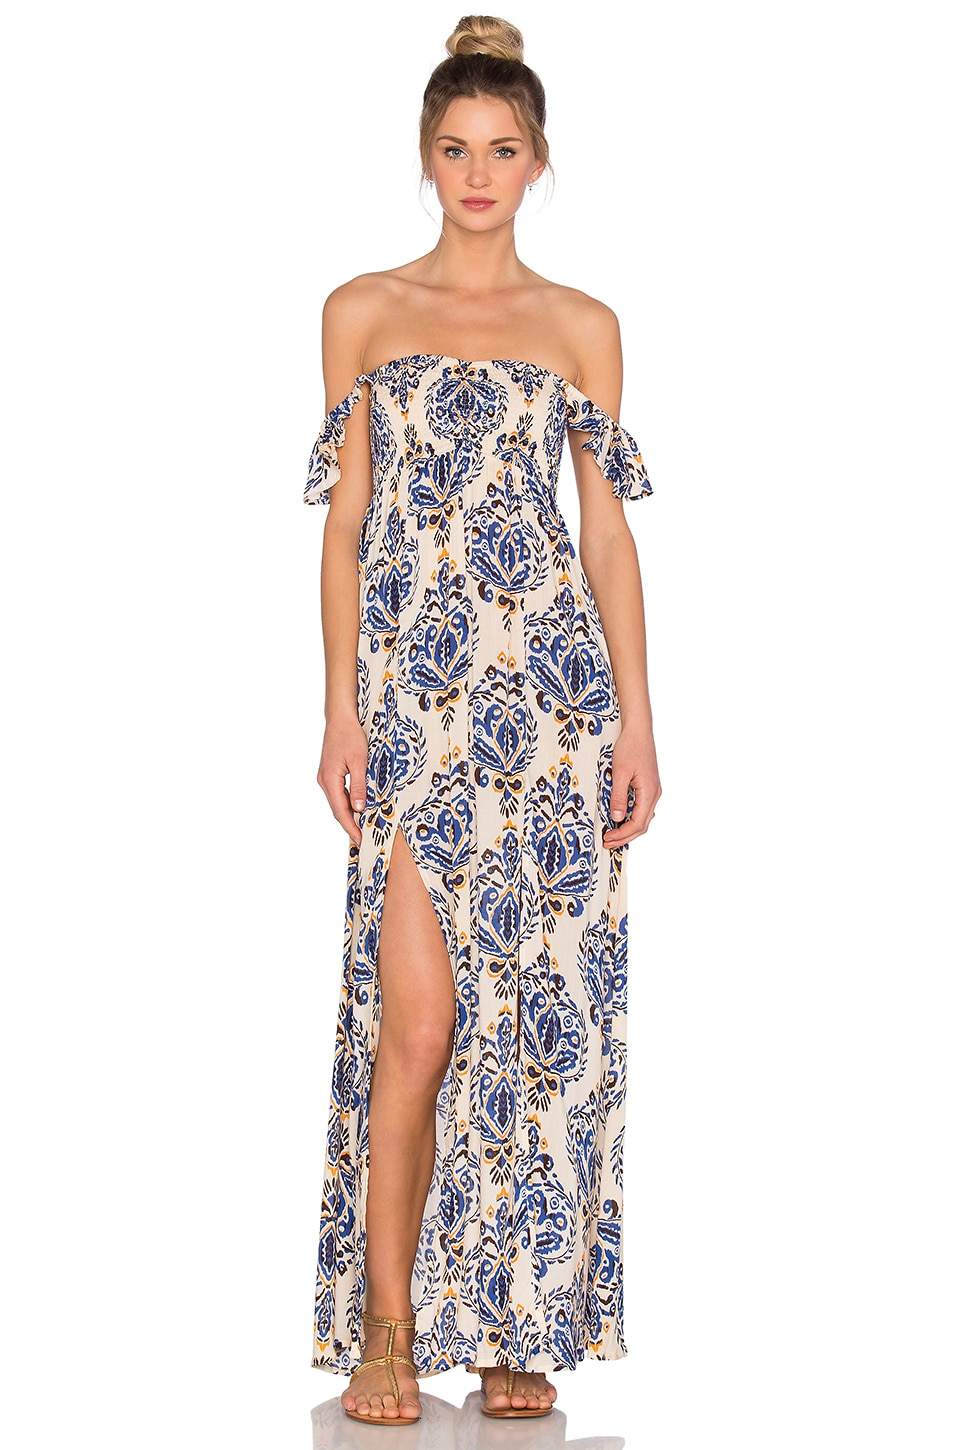 Tiare Hawaii Hollie Off Shoulder Dress in River Cream & Blue